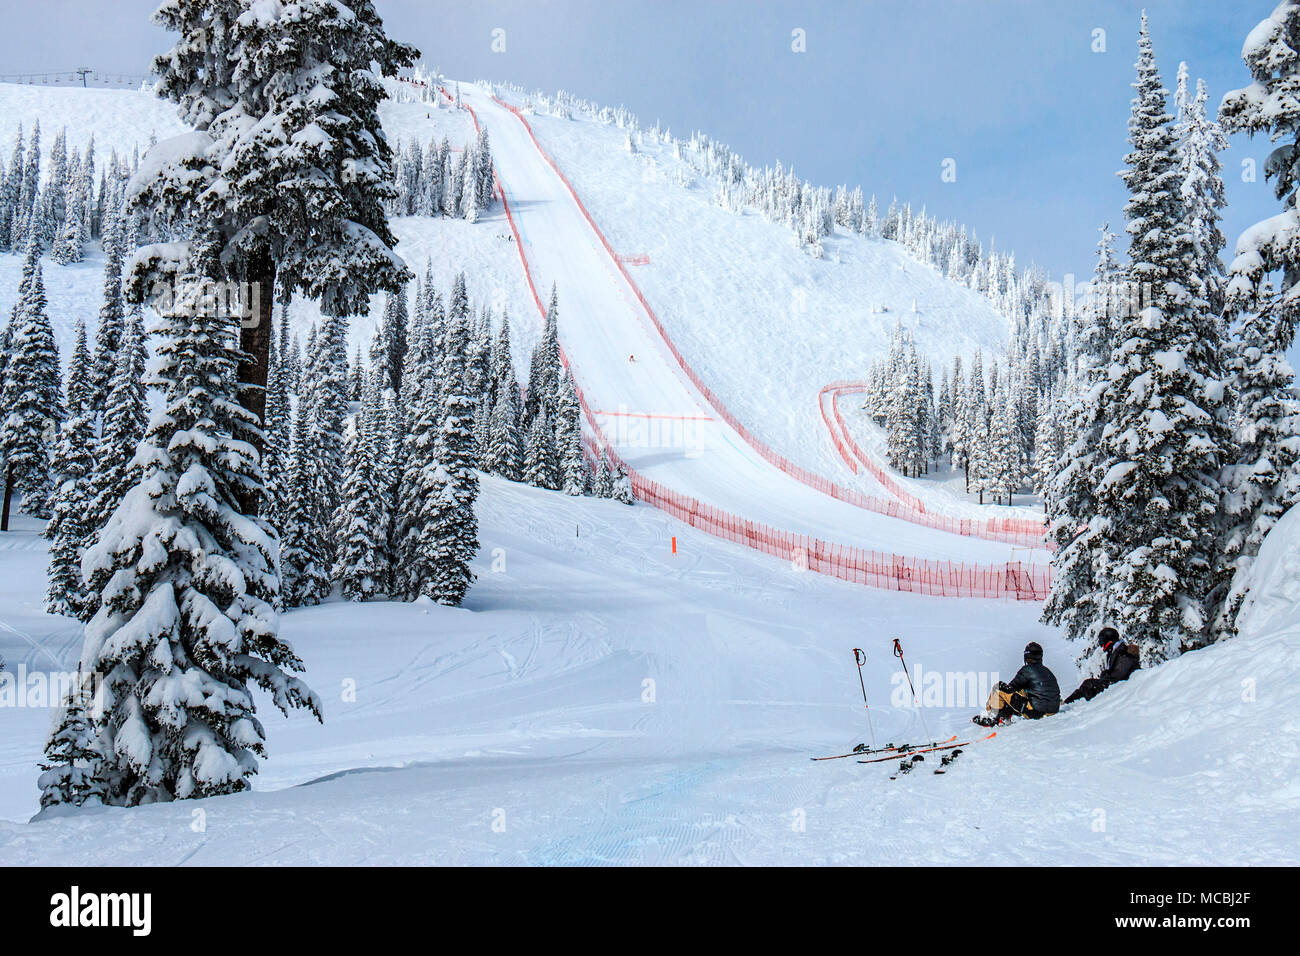 FIS Speed World Cup downhill ski race at Sun Peaks Resort in British Columbia, Canada. Racers come straight down a steep run without turning to see who is fastest. - Stock Image